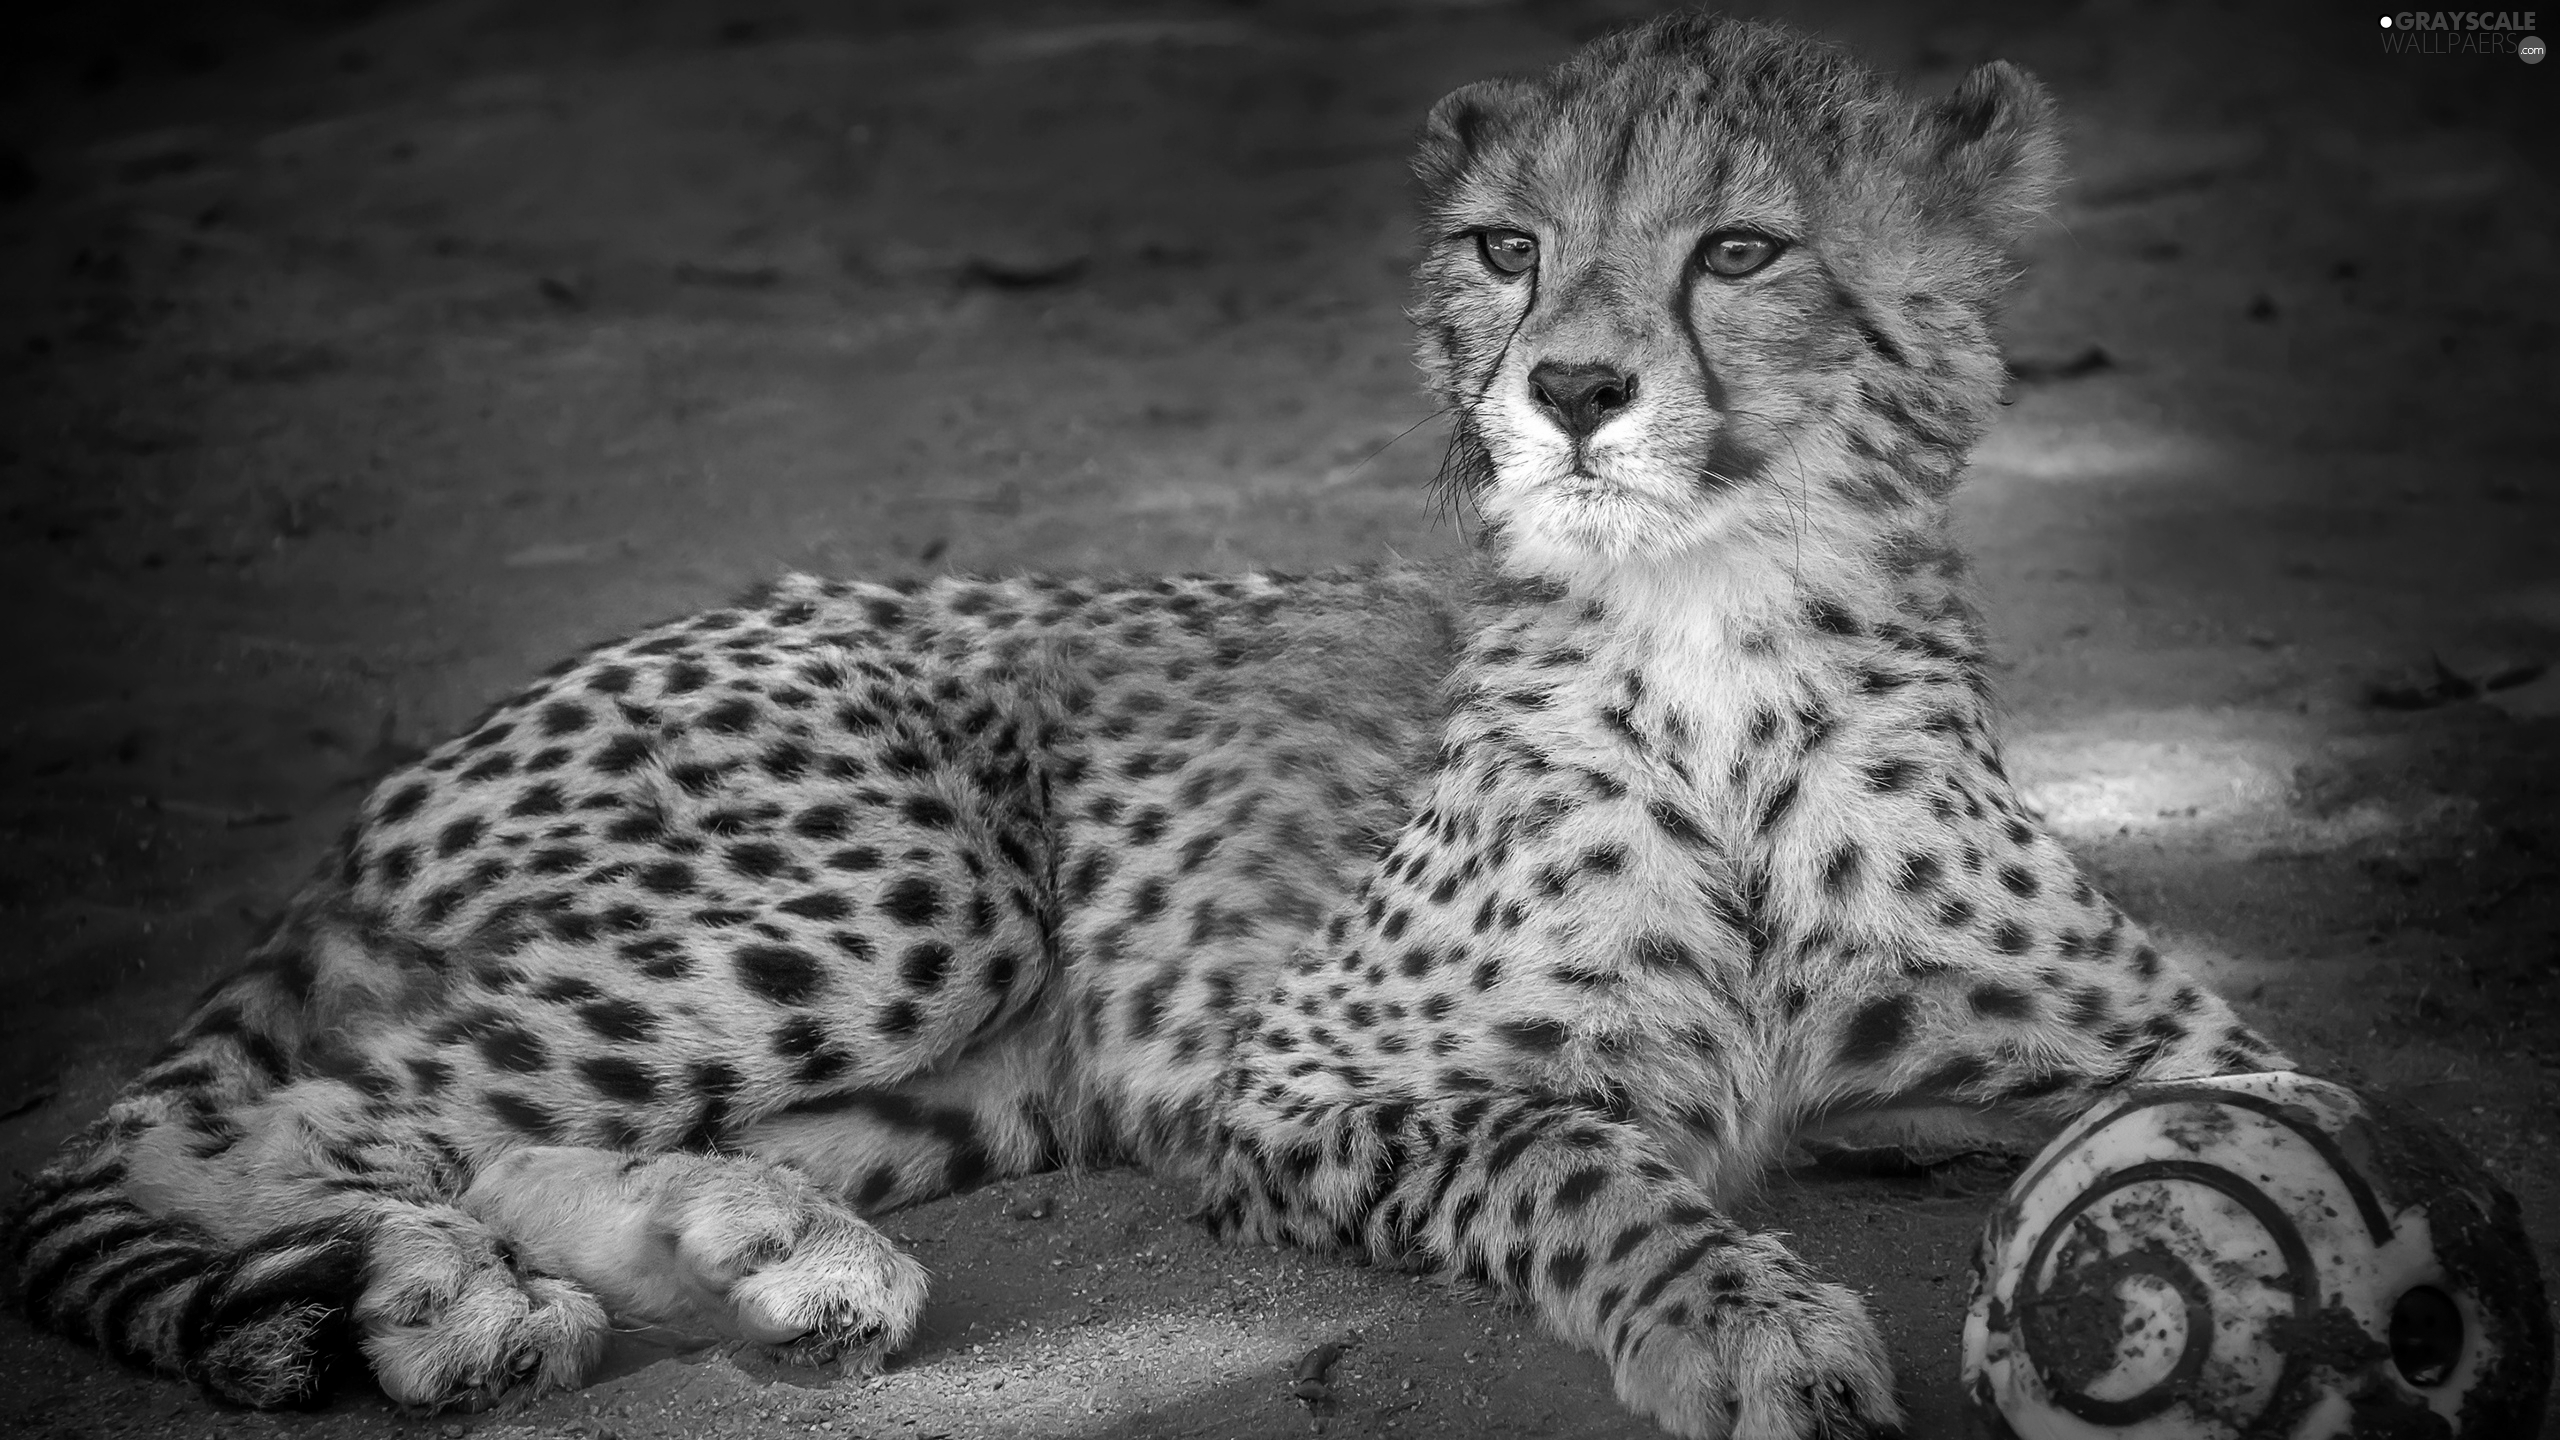 picture of a cheetah grayscale cheetah the ball 2560x1440 a of picture cheetah